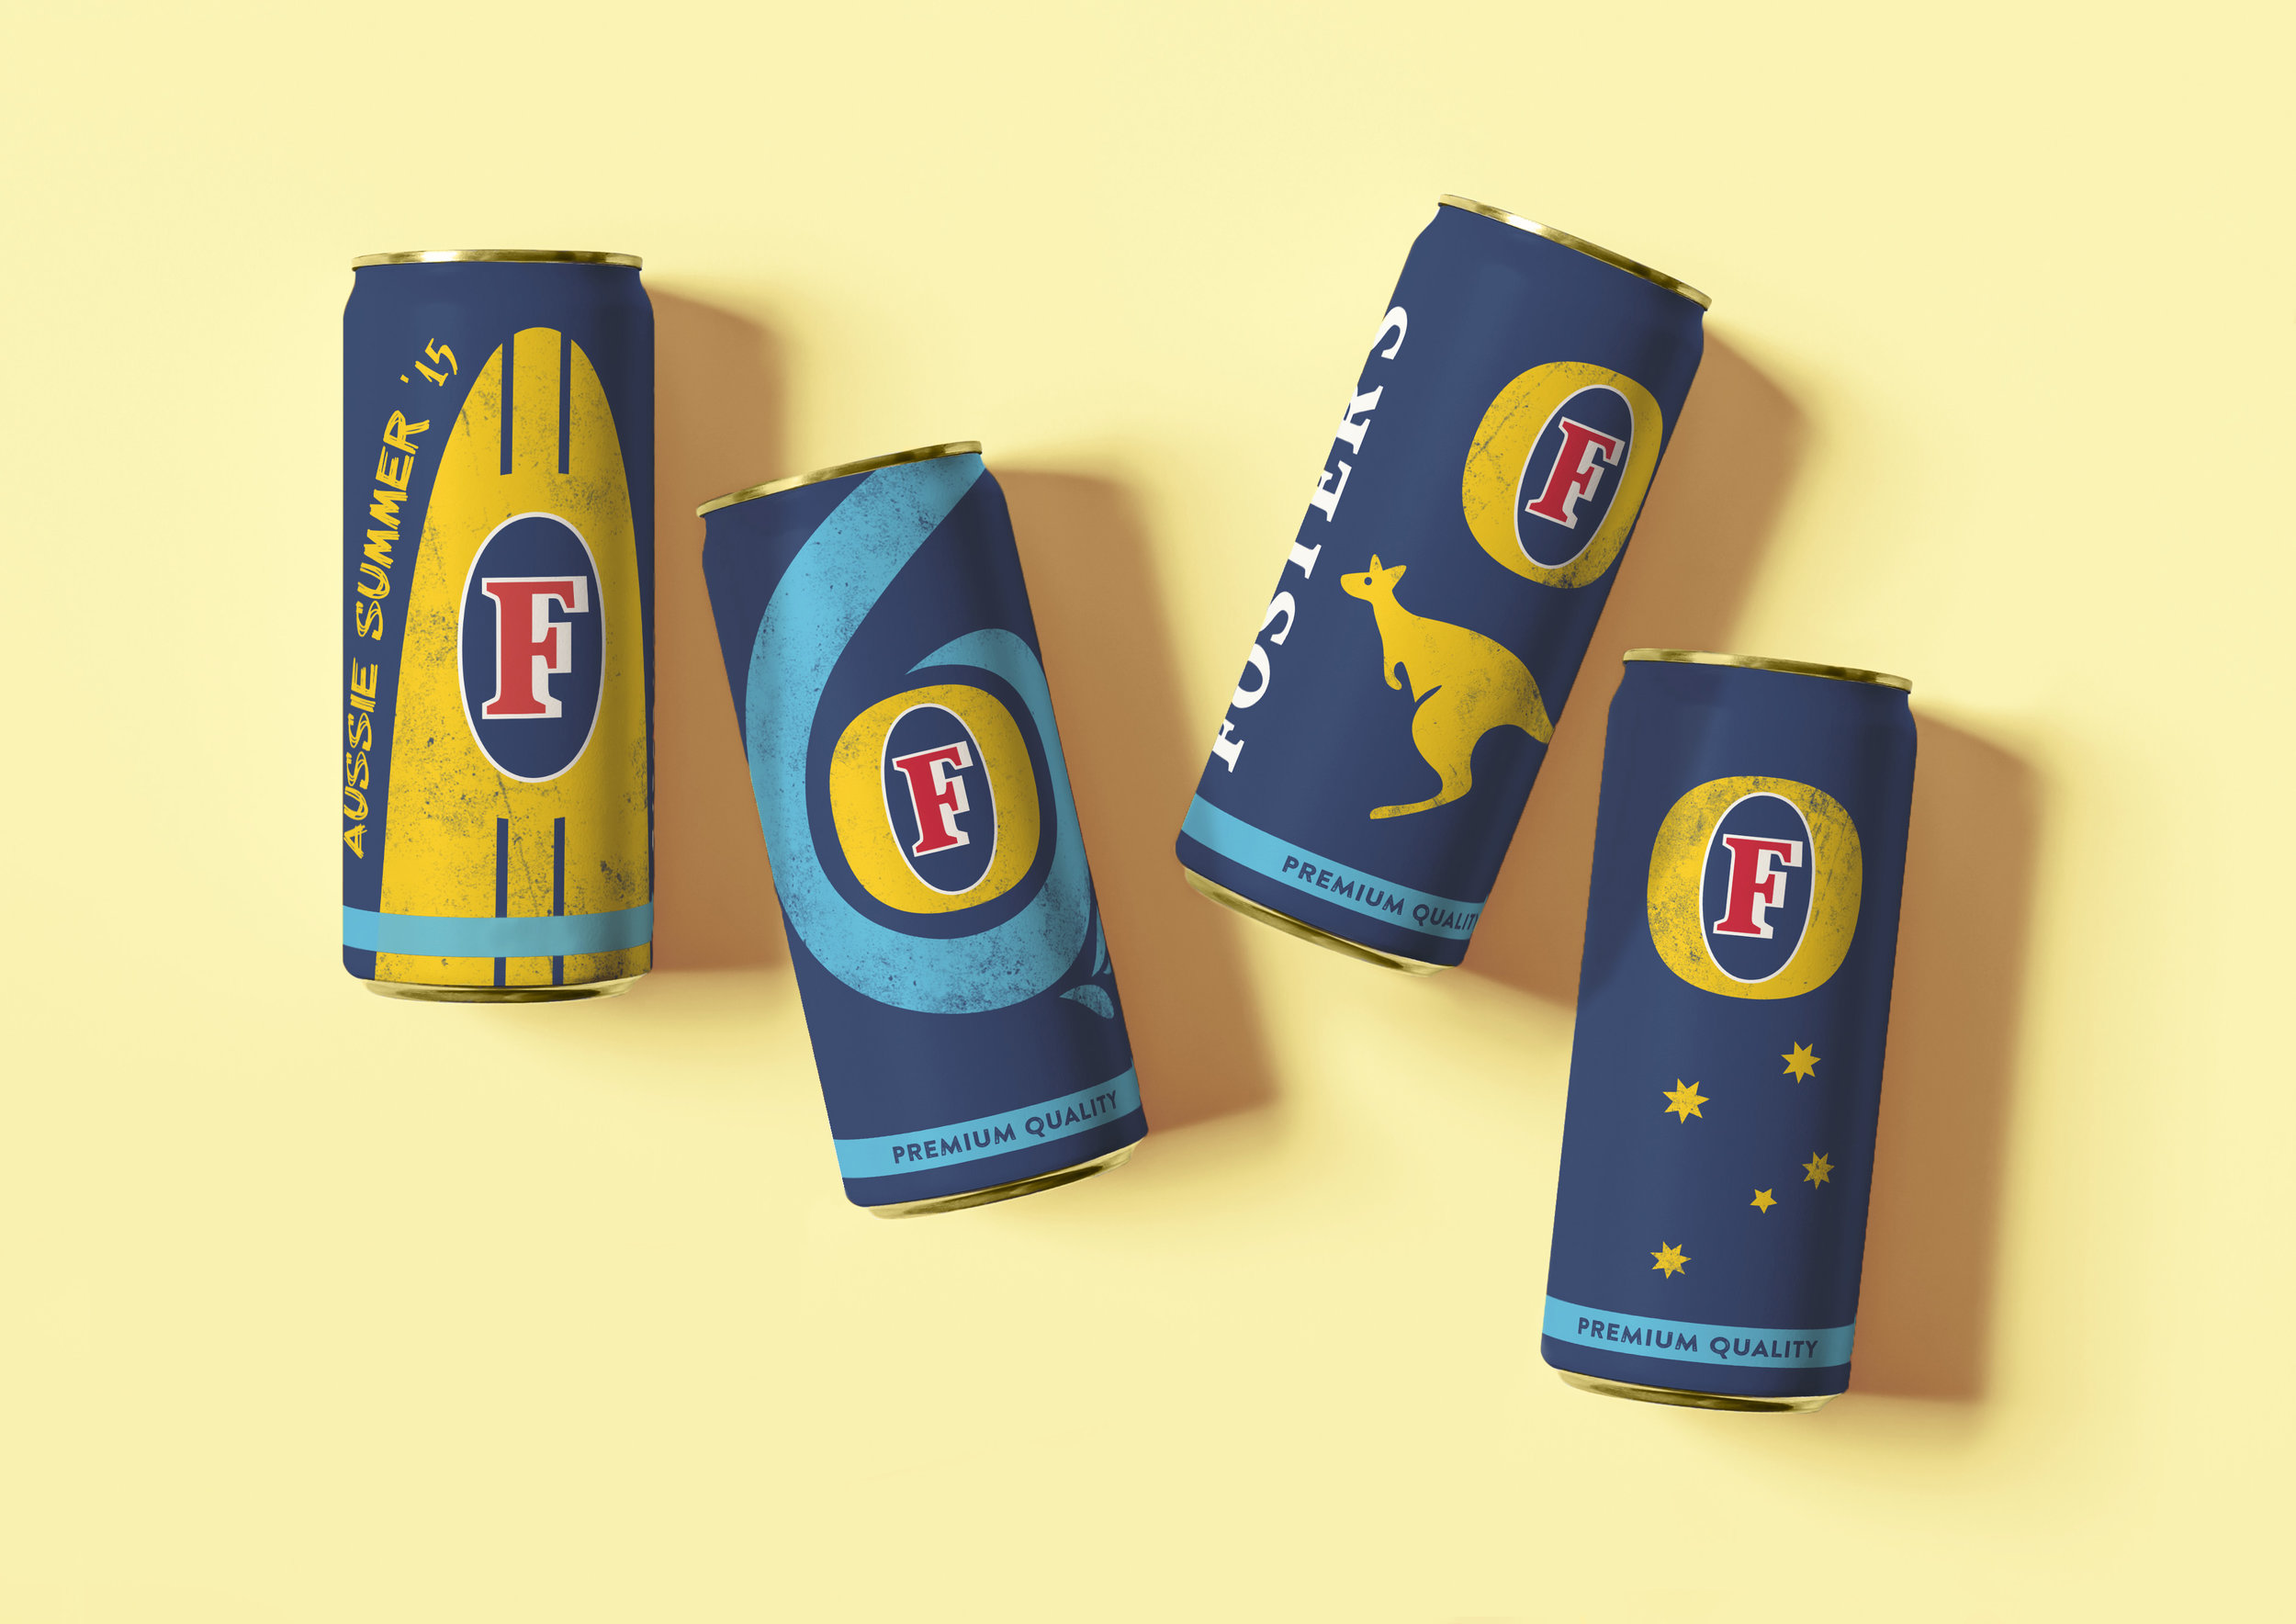 Fosters_cans.jpg